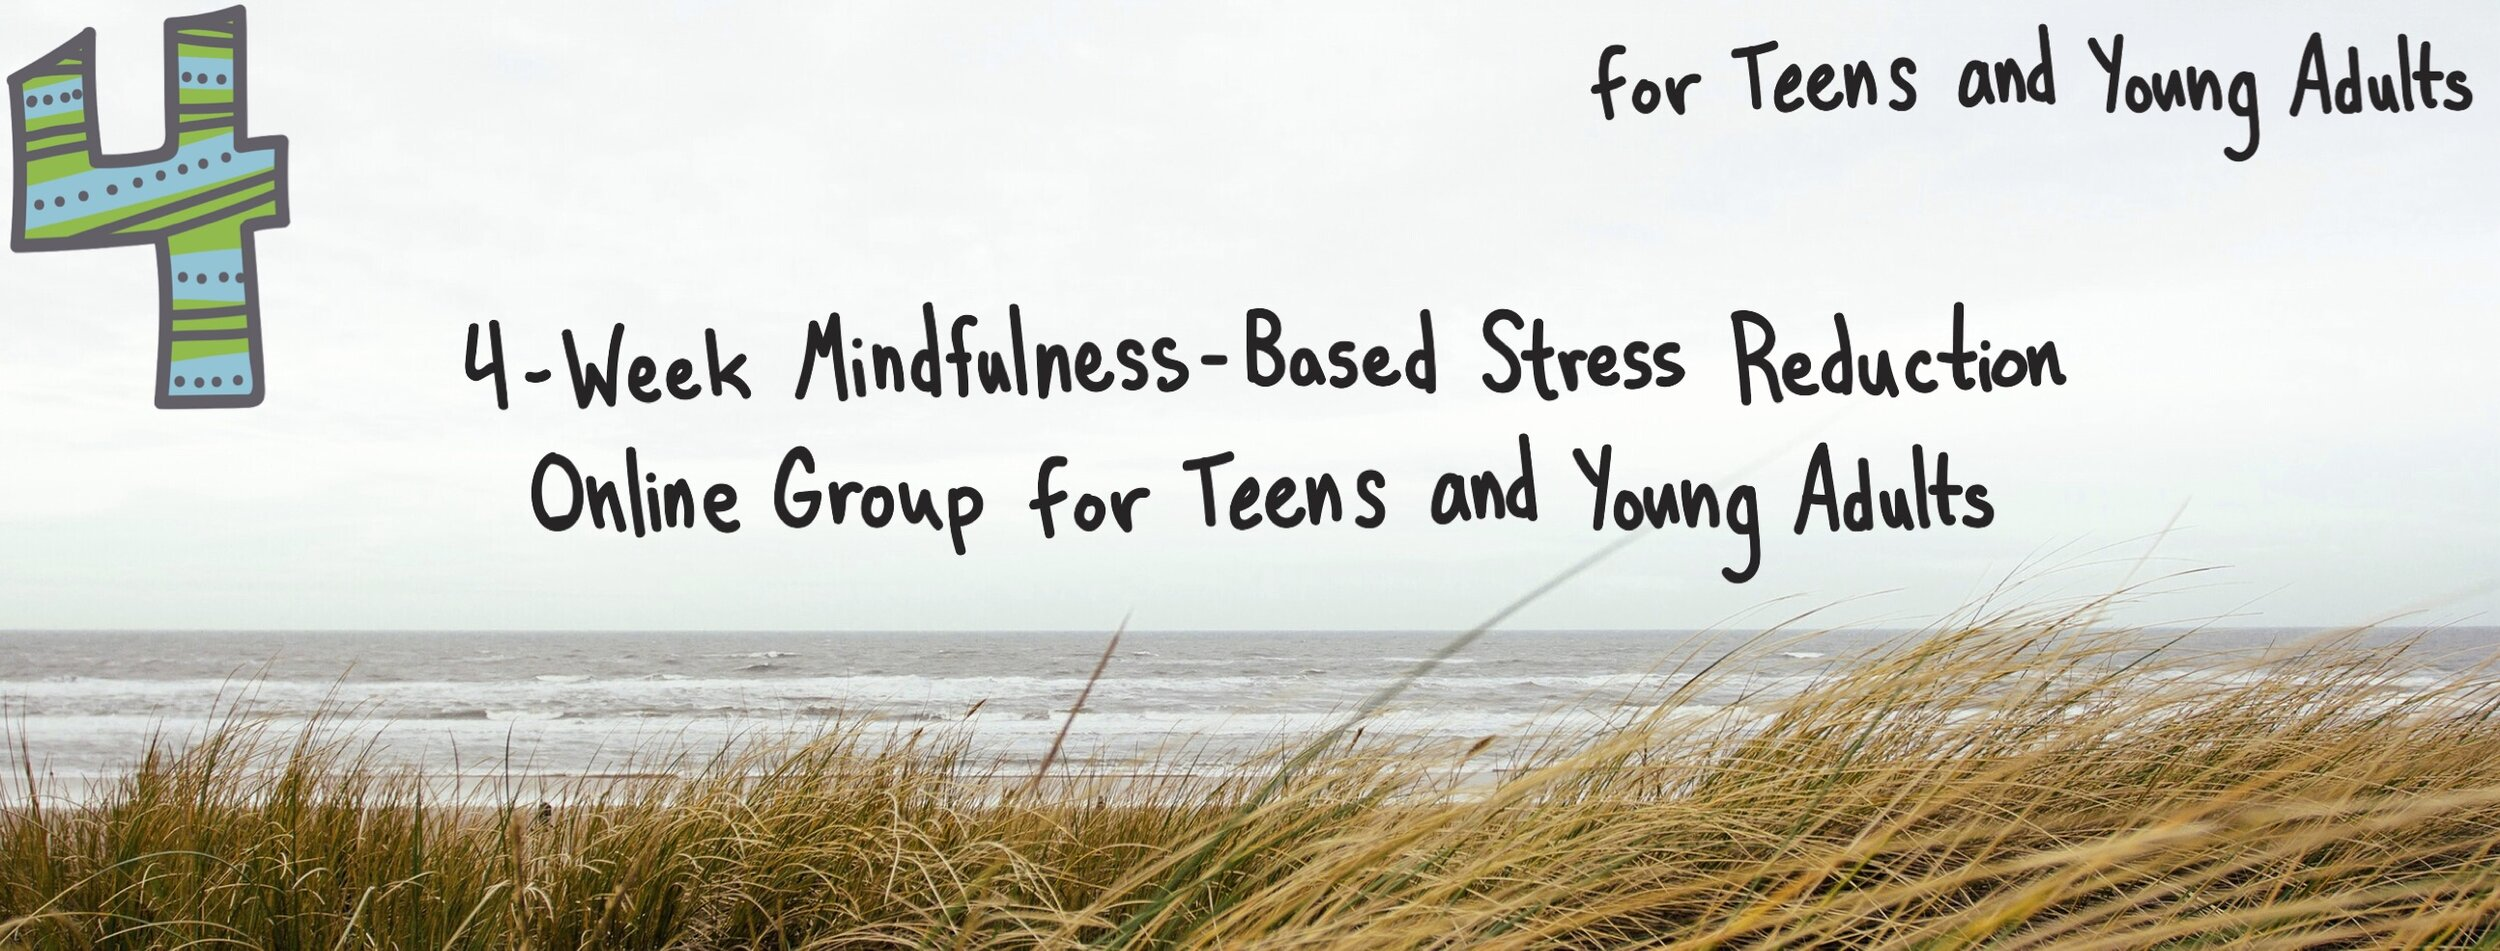 4 Week Online Mbsr T Group For Teens Mindfulness Based Stress